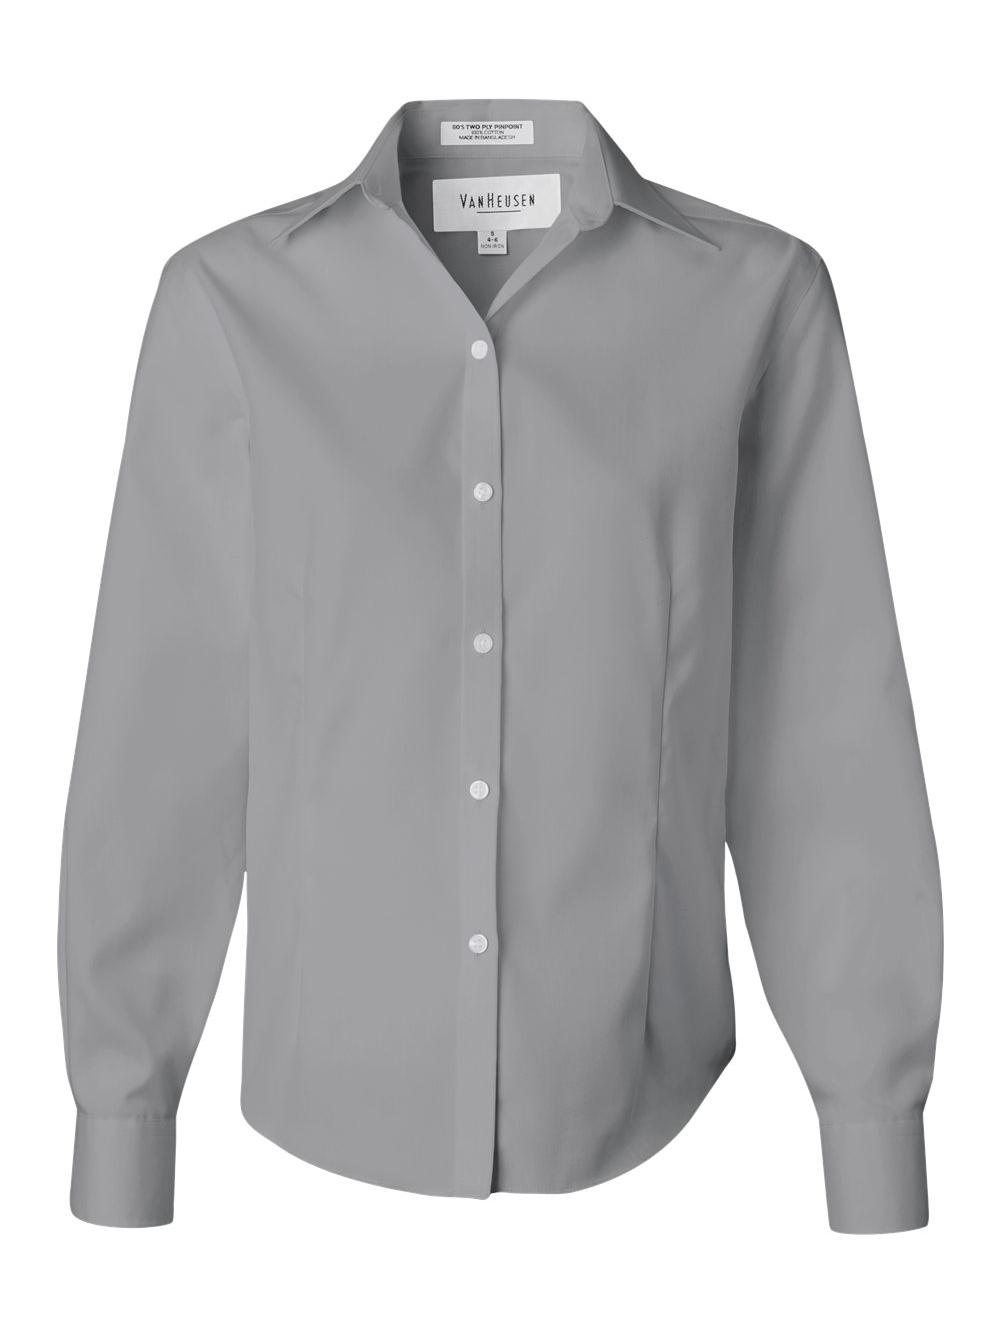 Van-Heusen-Women-039-s-Non-Iron-Pinpoint-Oxford-Shirt-13V0144 thumbnail 9